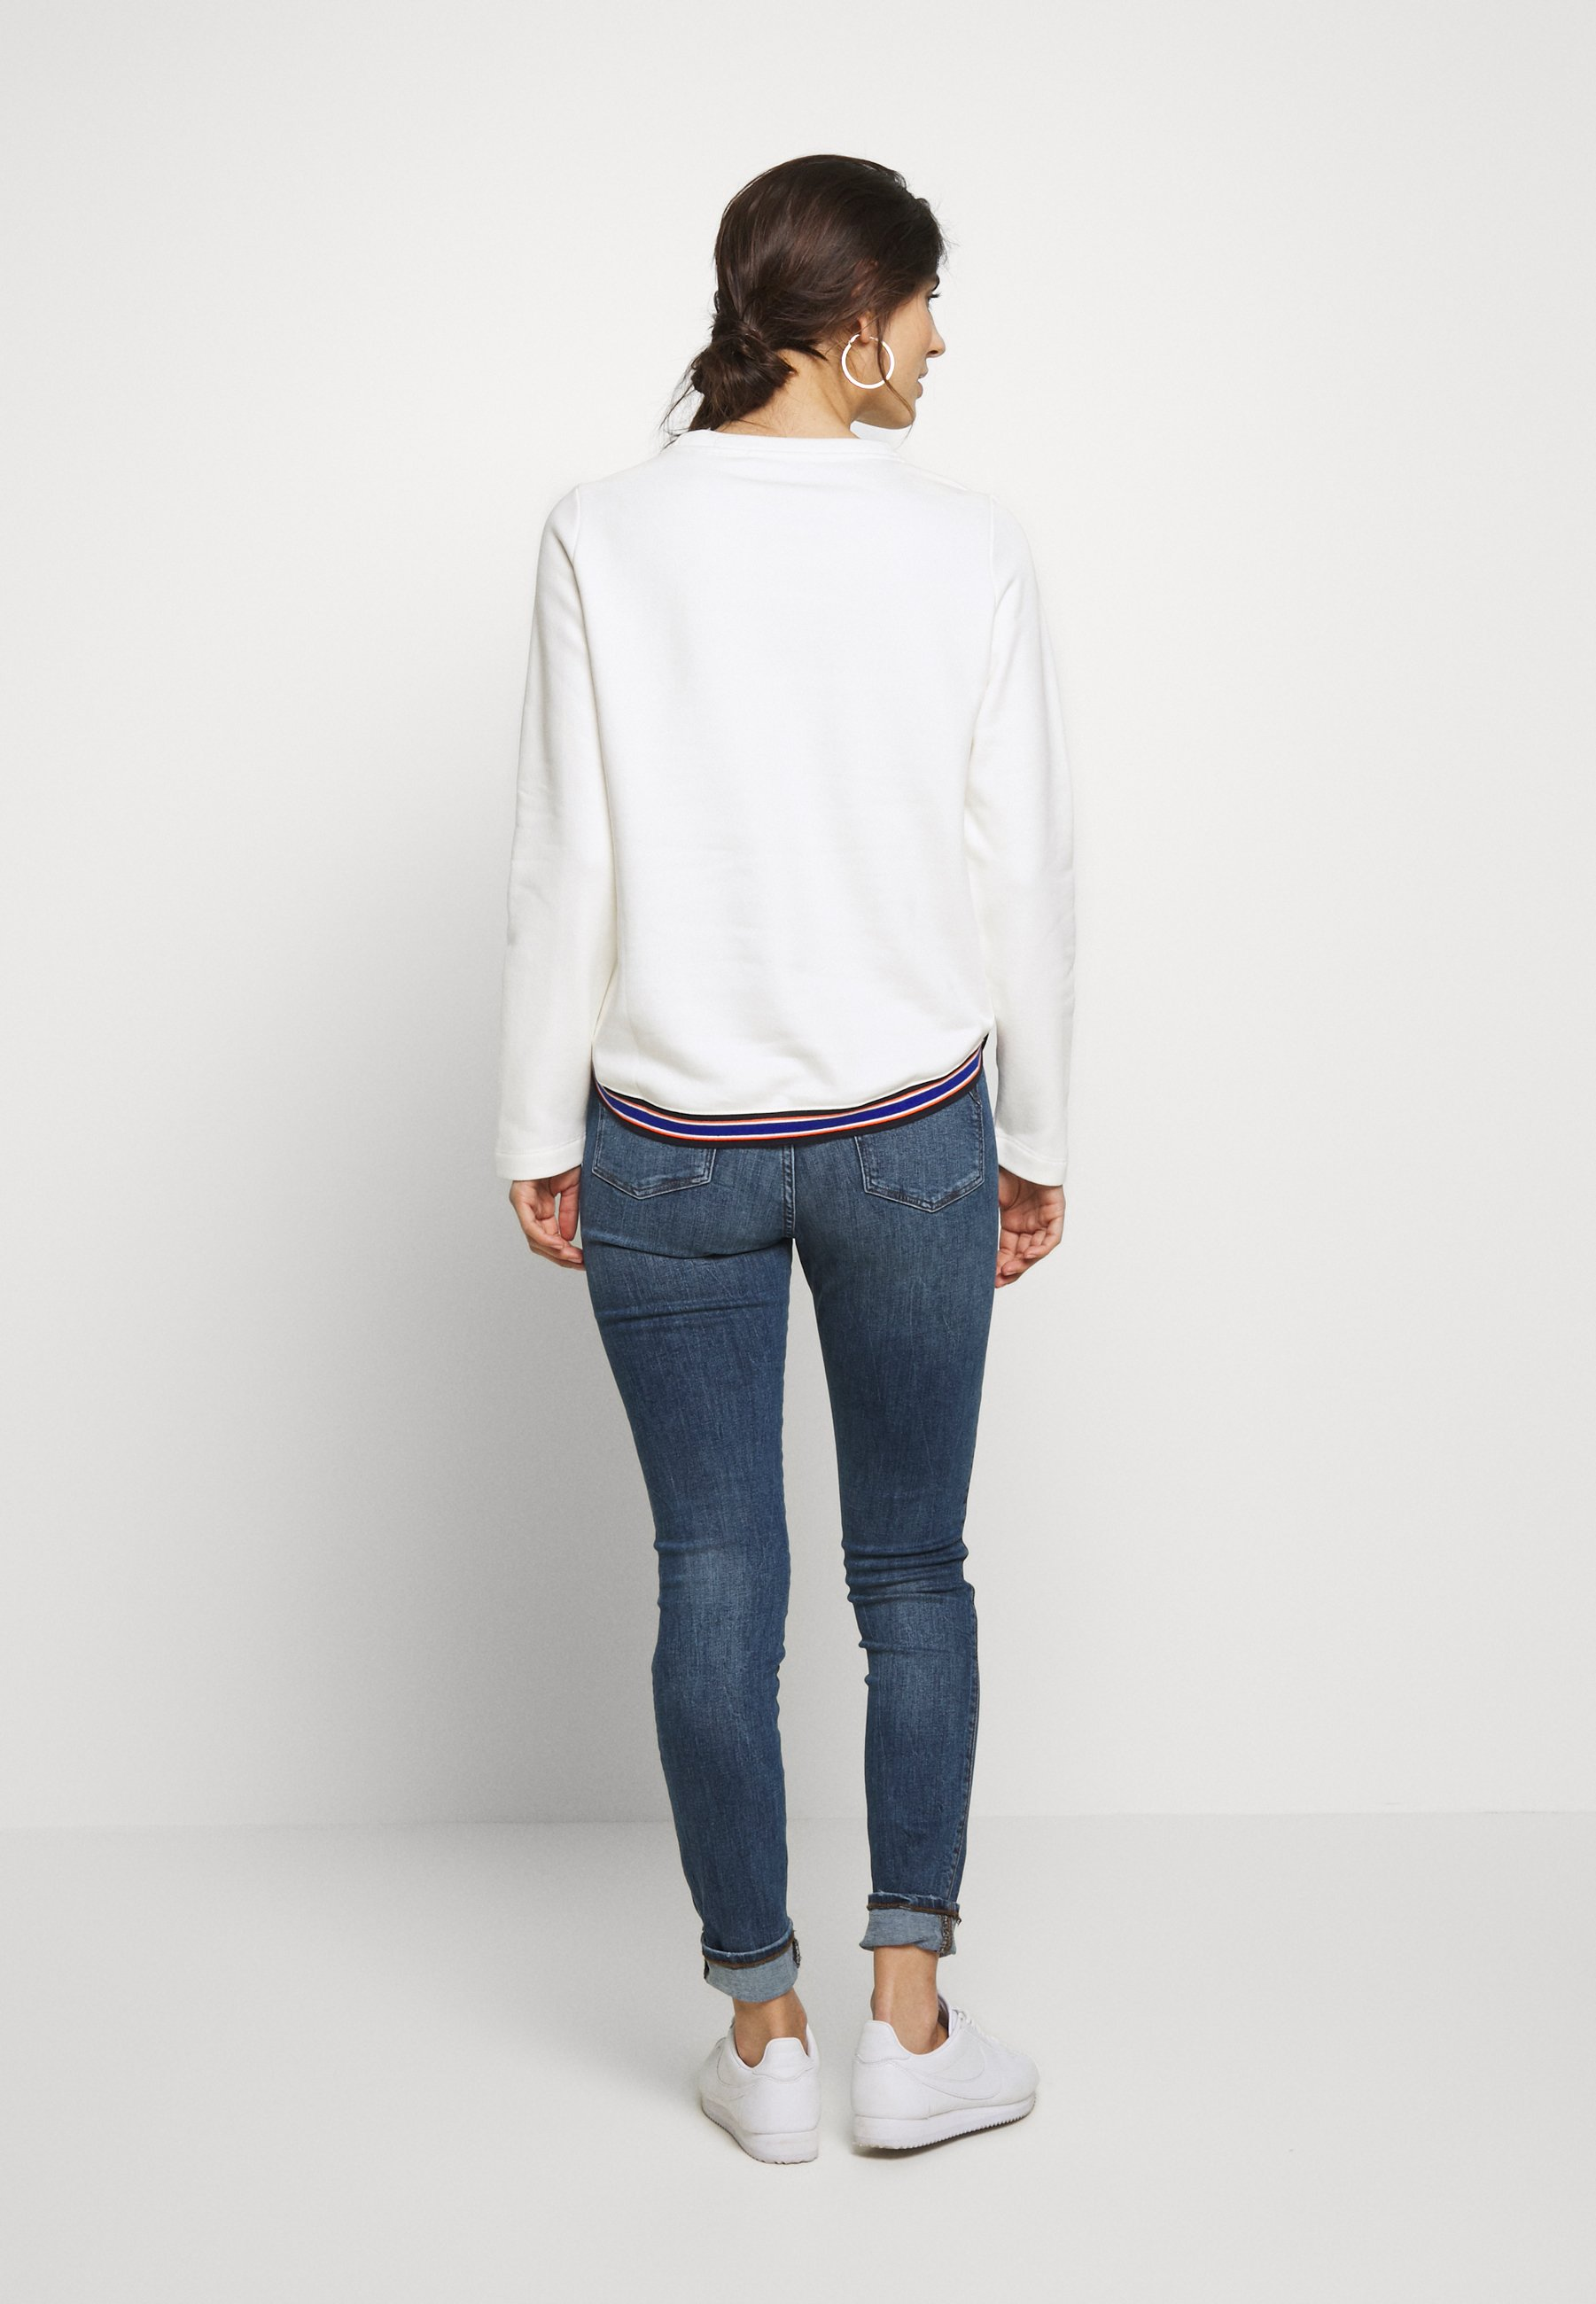 s.Oliver Sweatshirt - cream